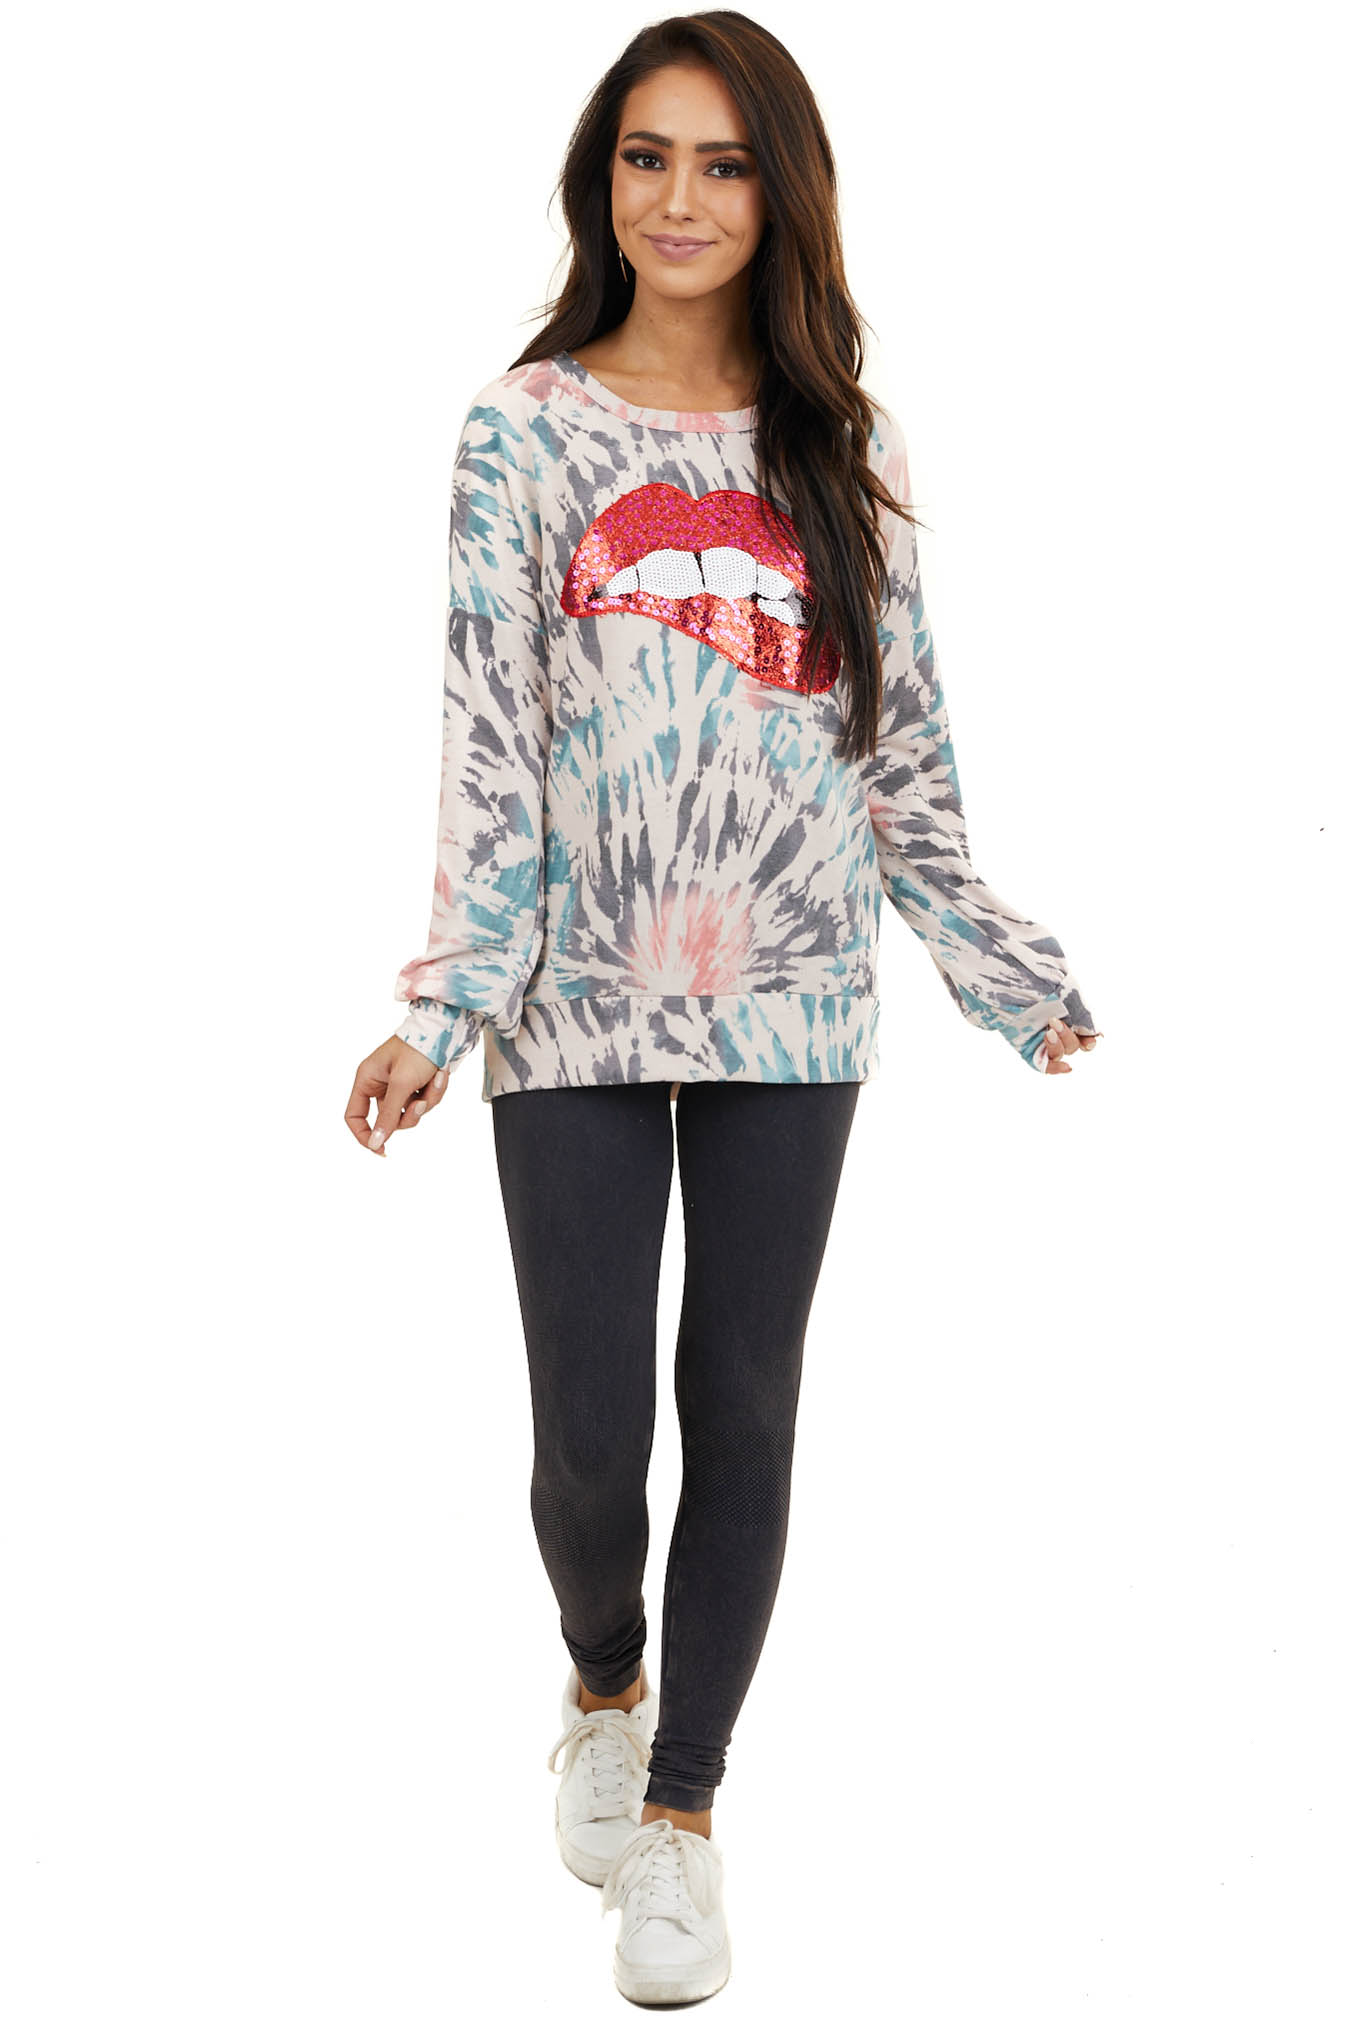 Blush Multi Color Tie Dye Top with Red Sequin Lip Graphic